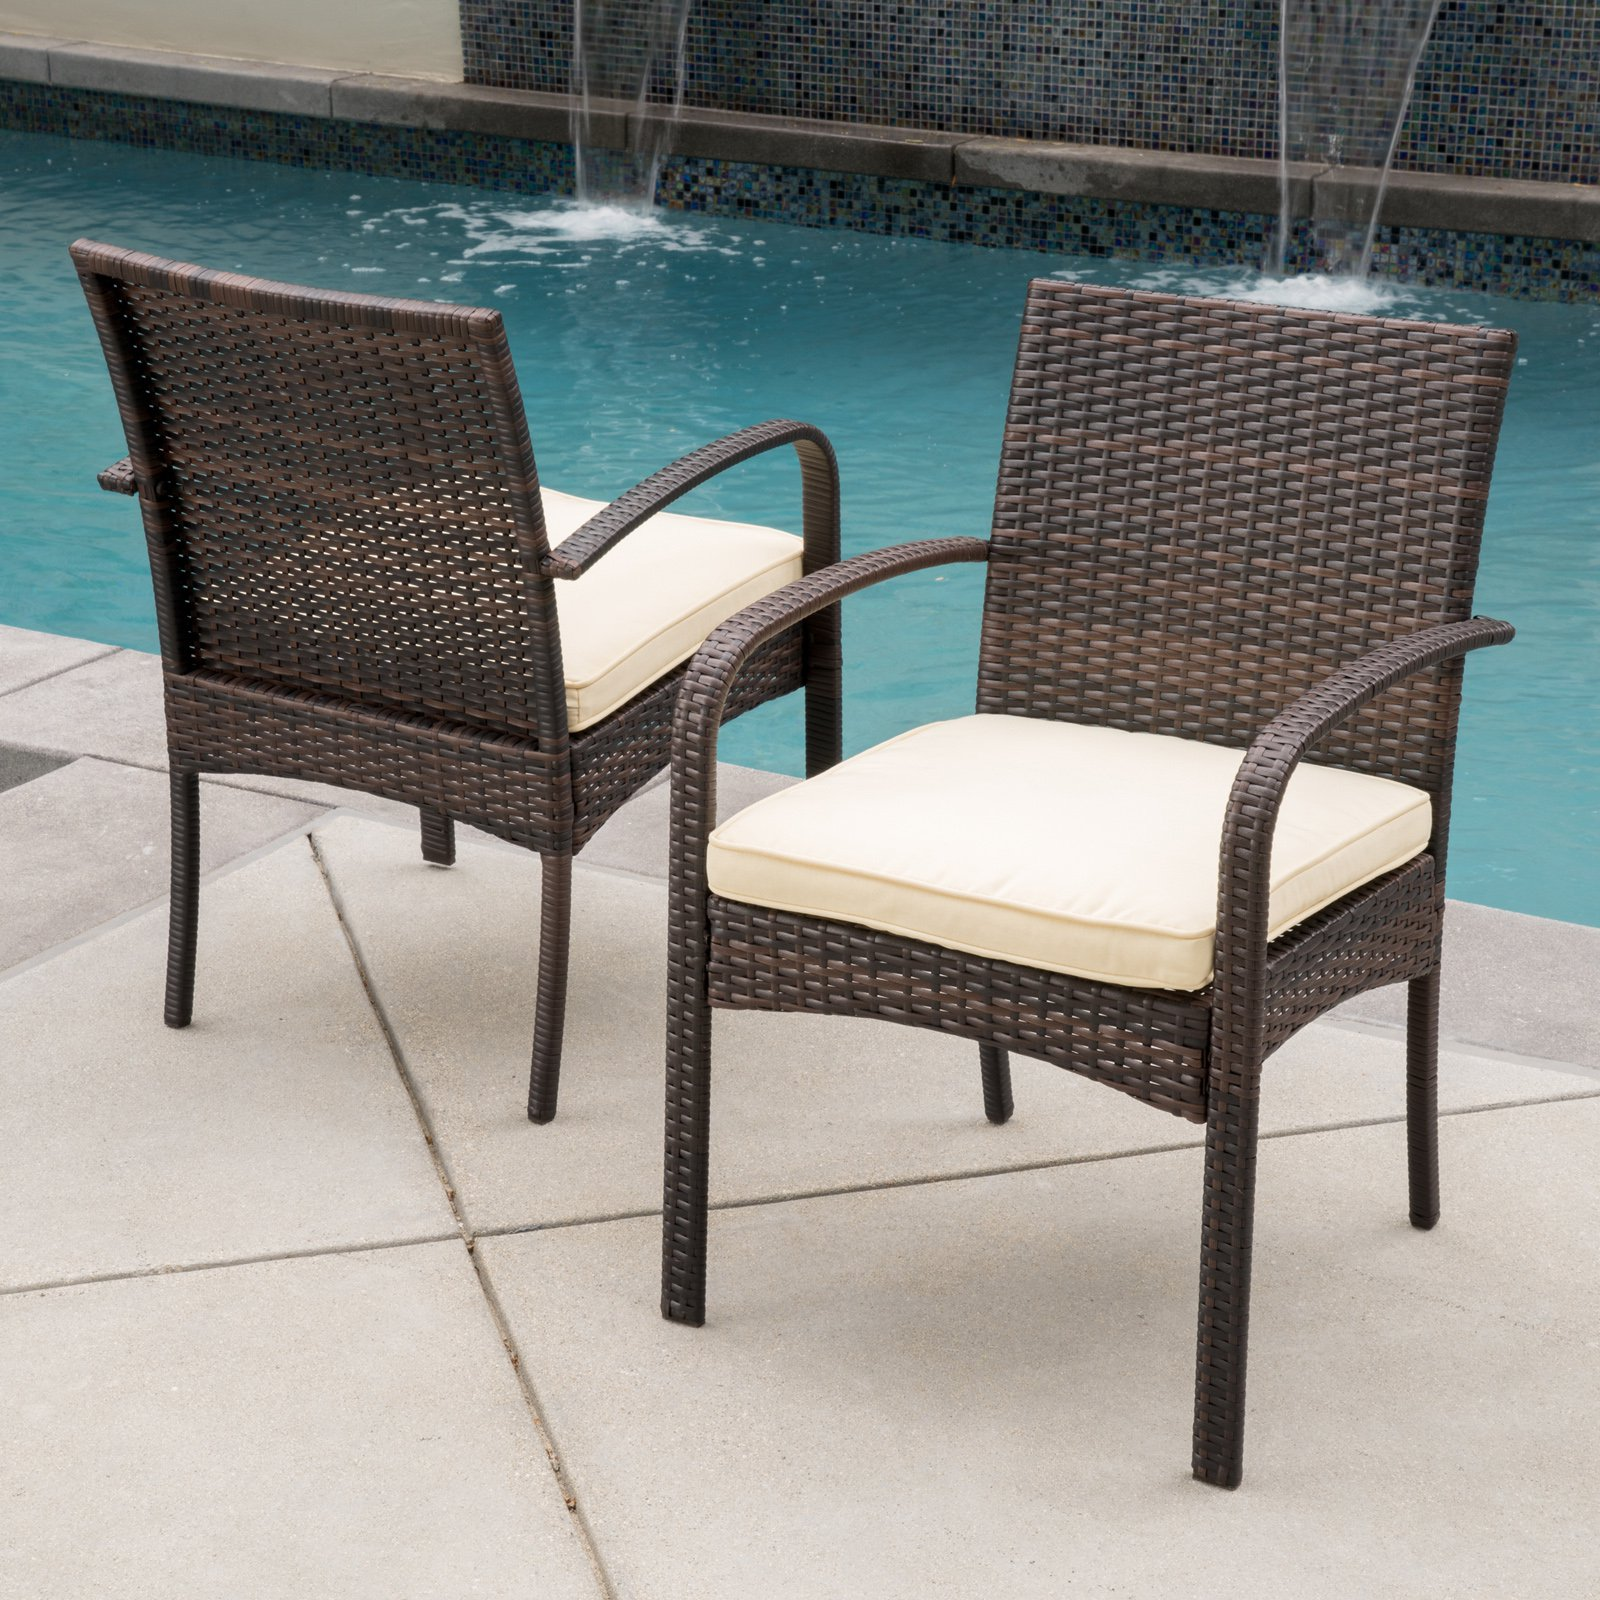 Patio Chairs & Stools Walmart